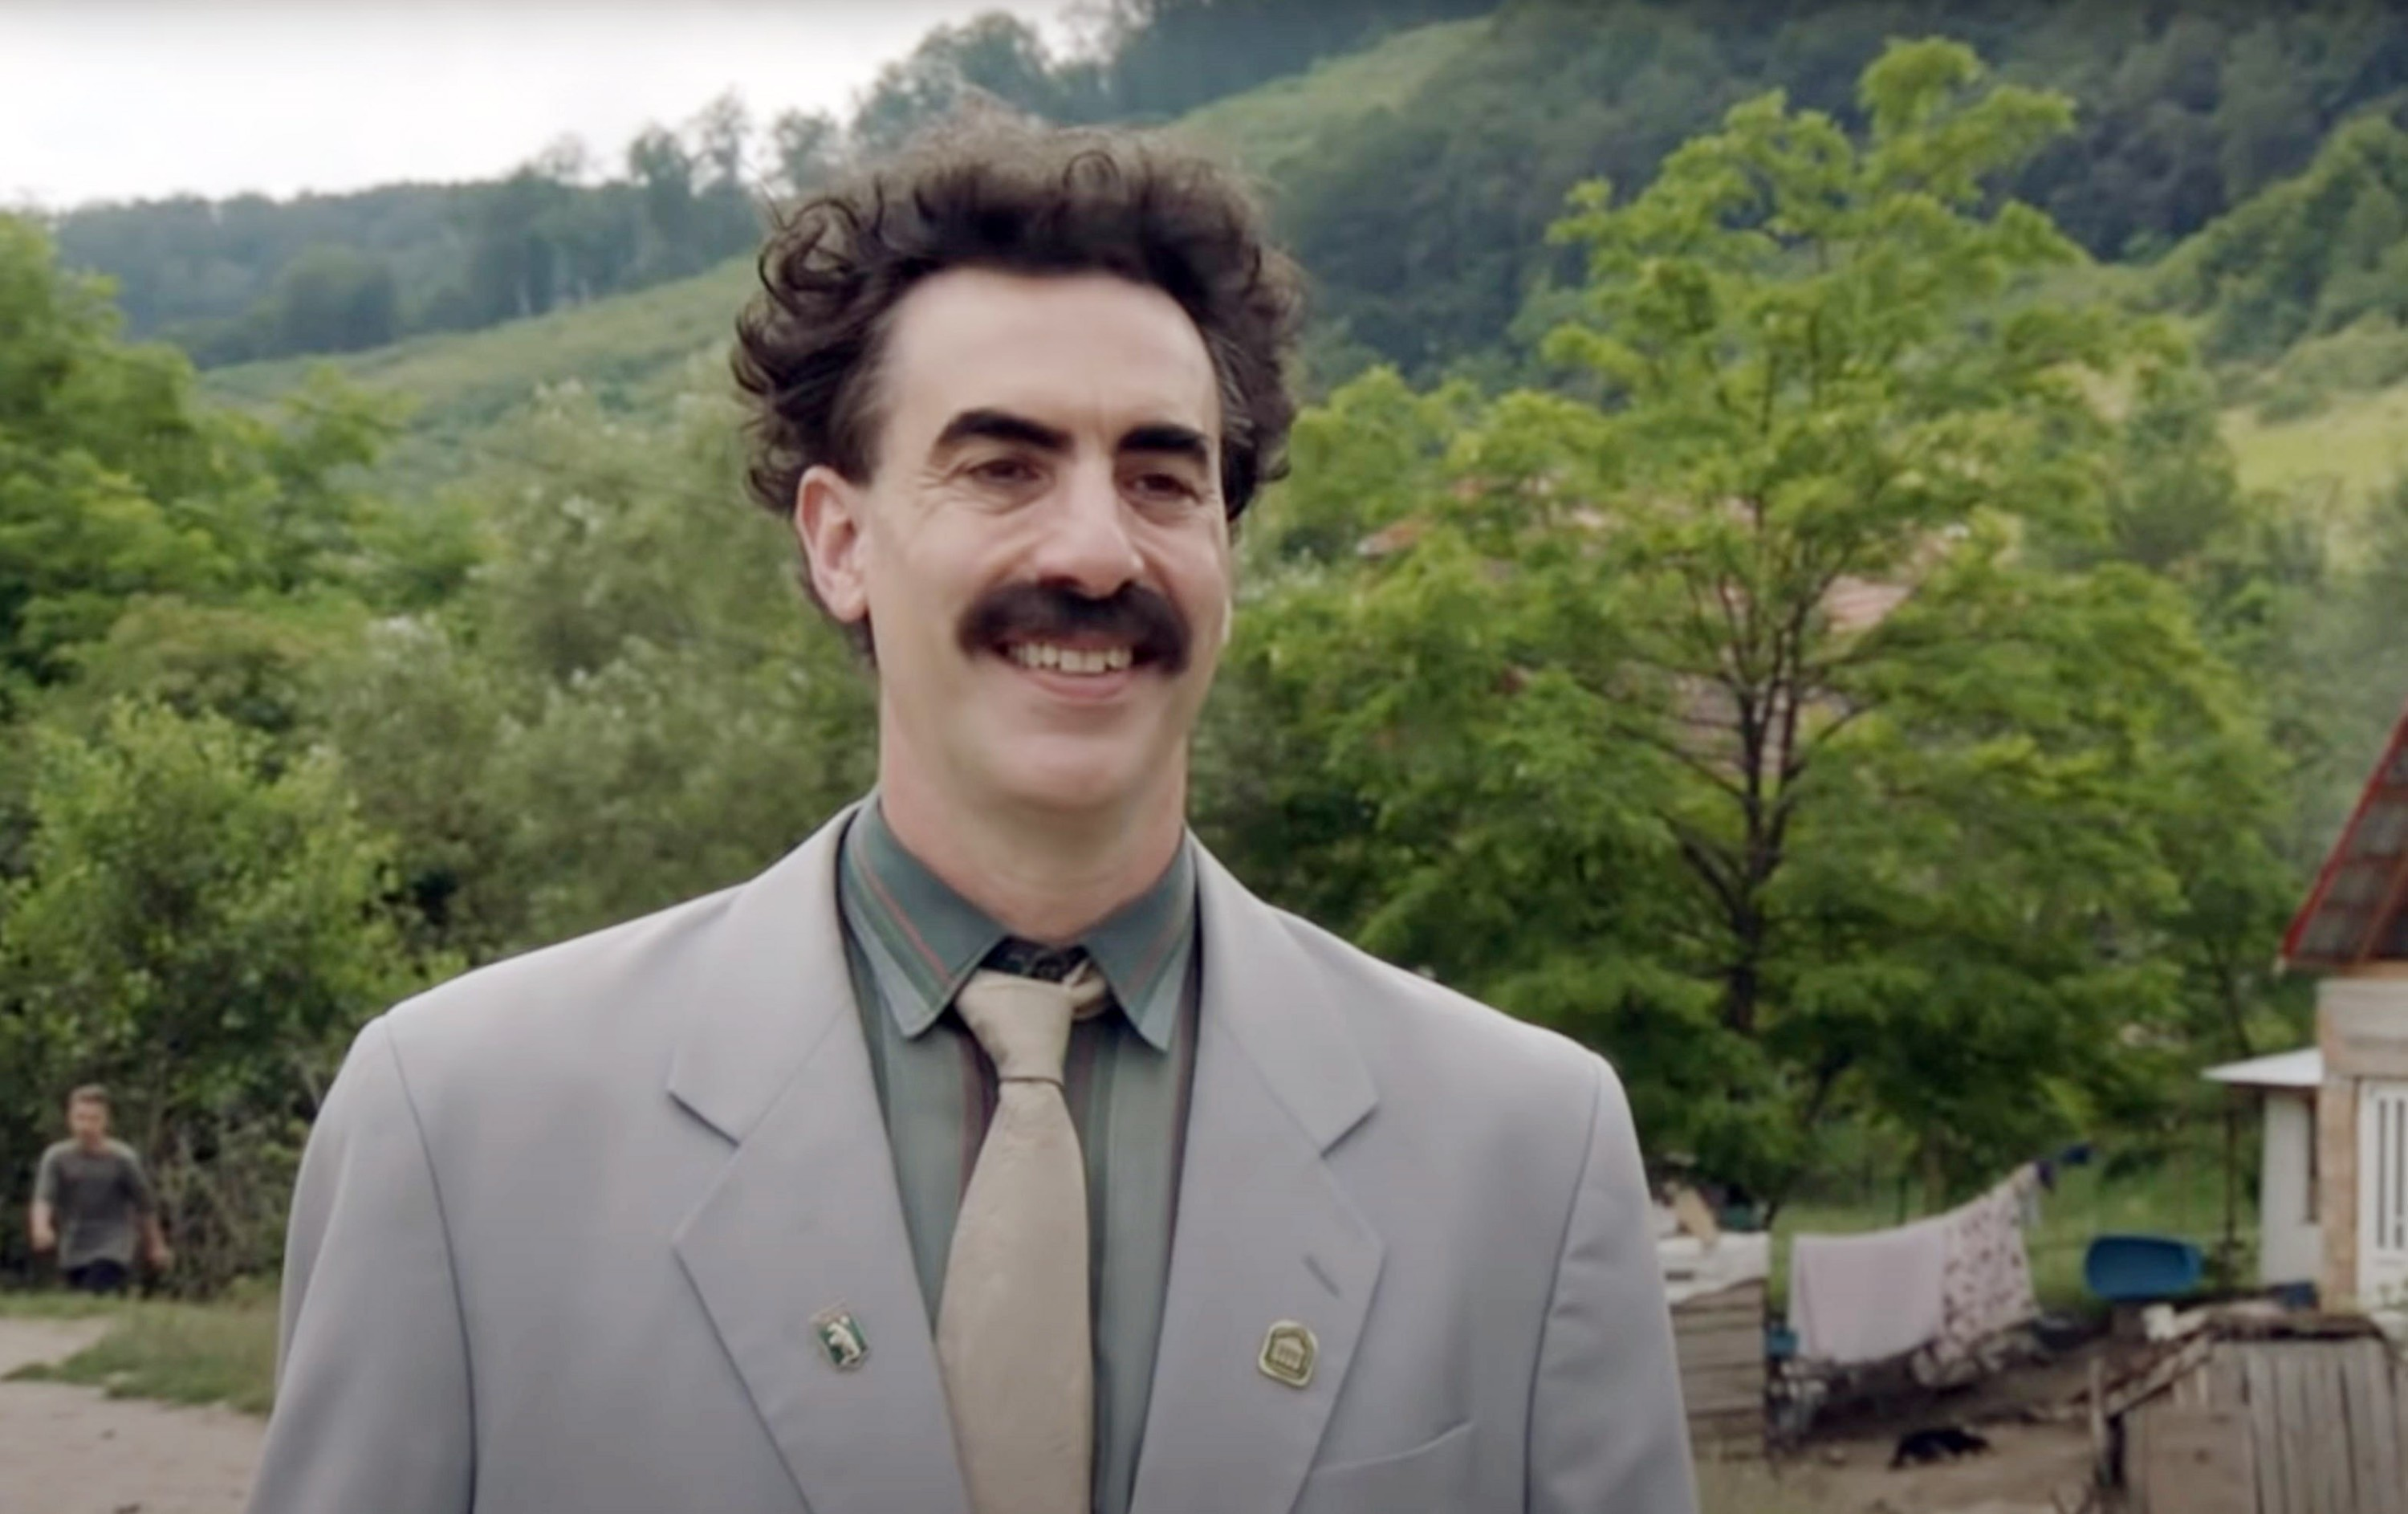 Sacha Baron Cohen spent five days of lockdown in character as Borat